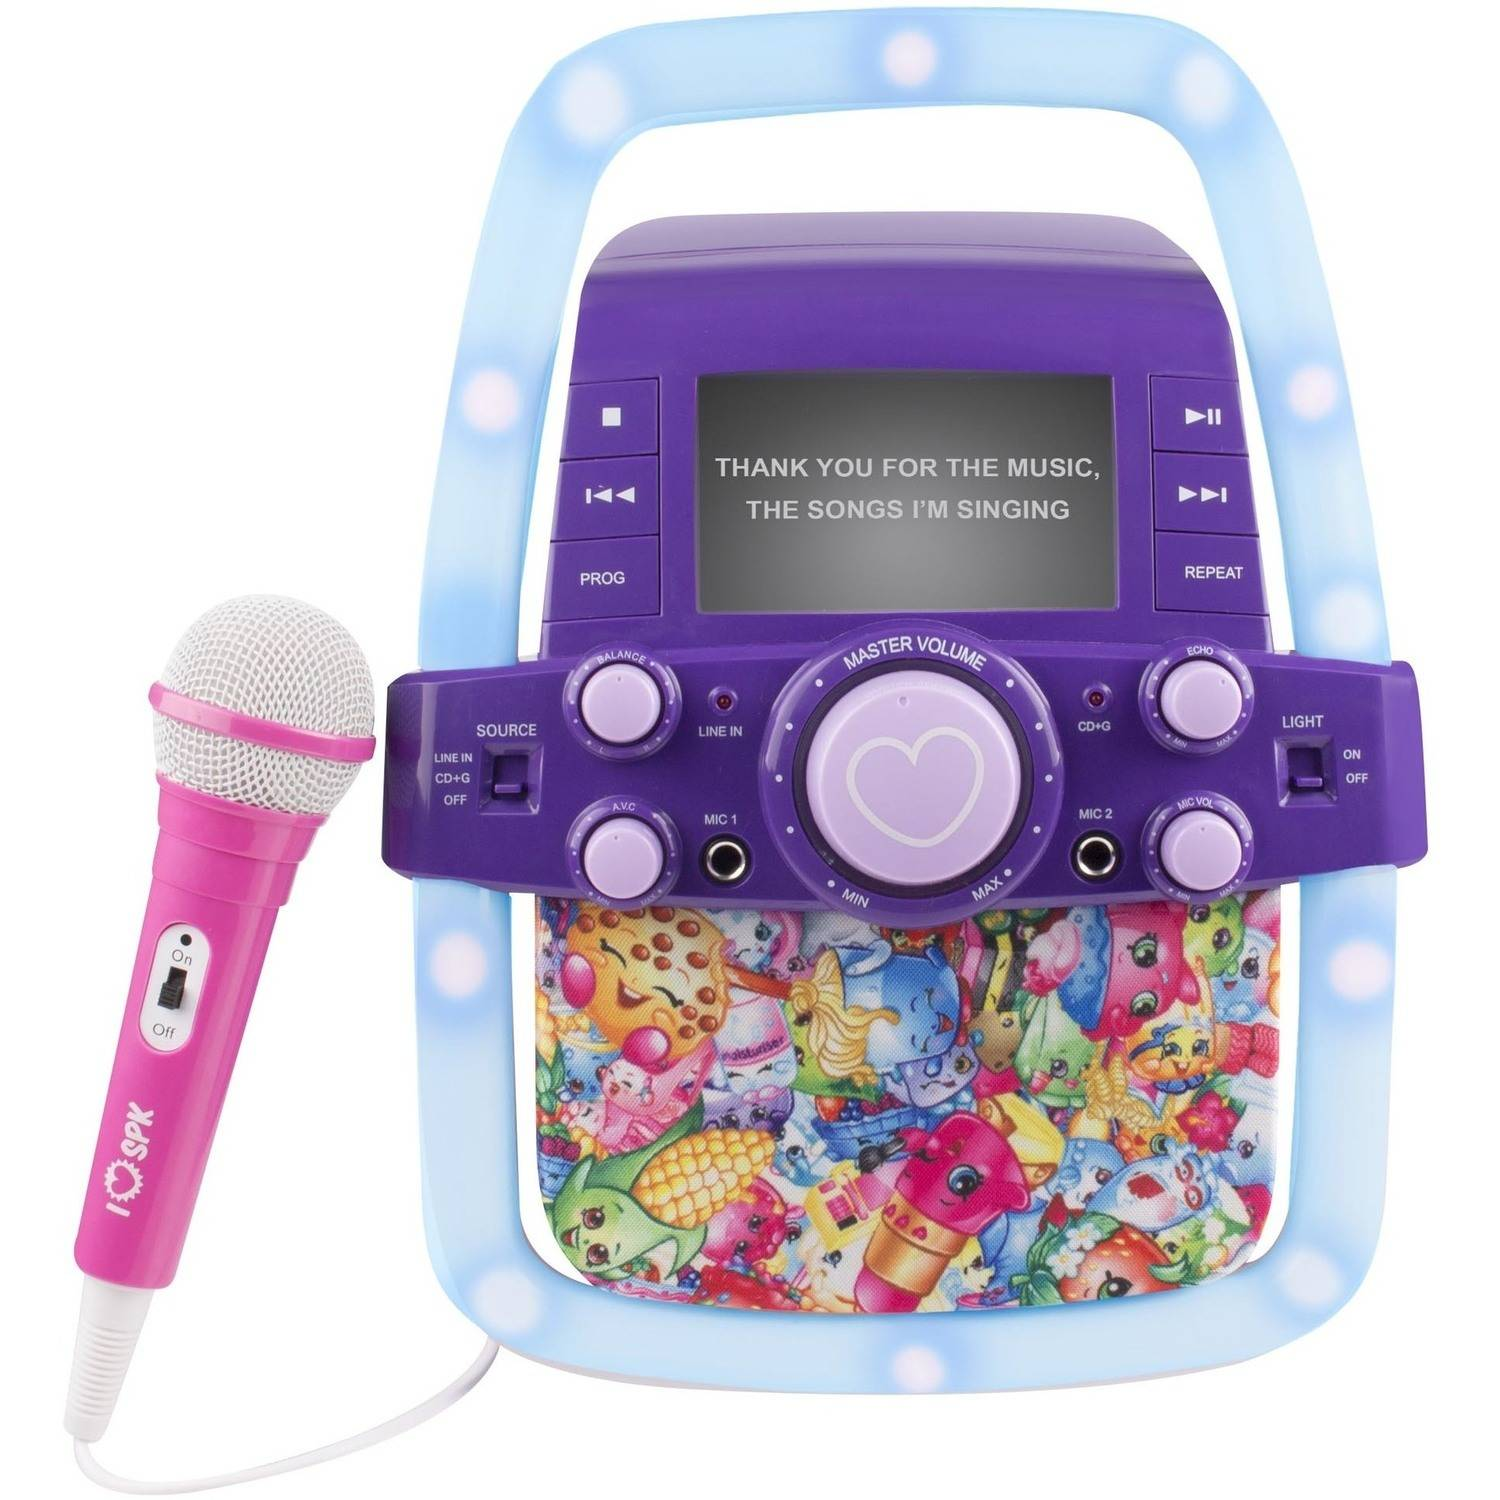 Shopkins Light up Karaoke with Screen by Sakar International- http://www.sakar.com